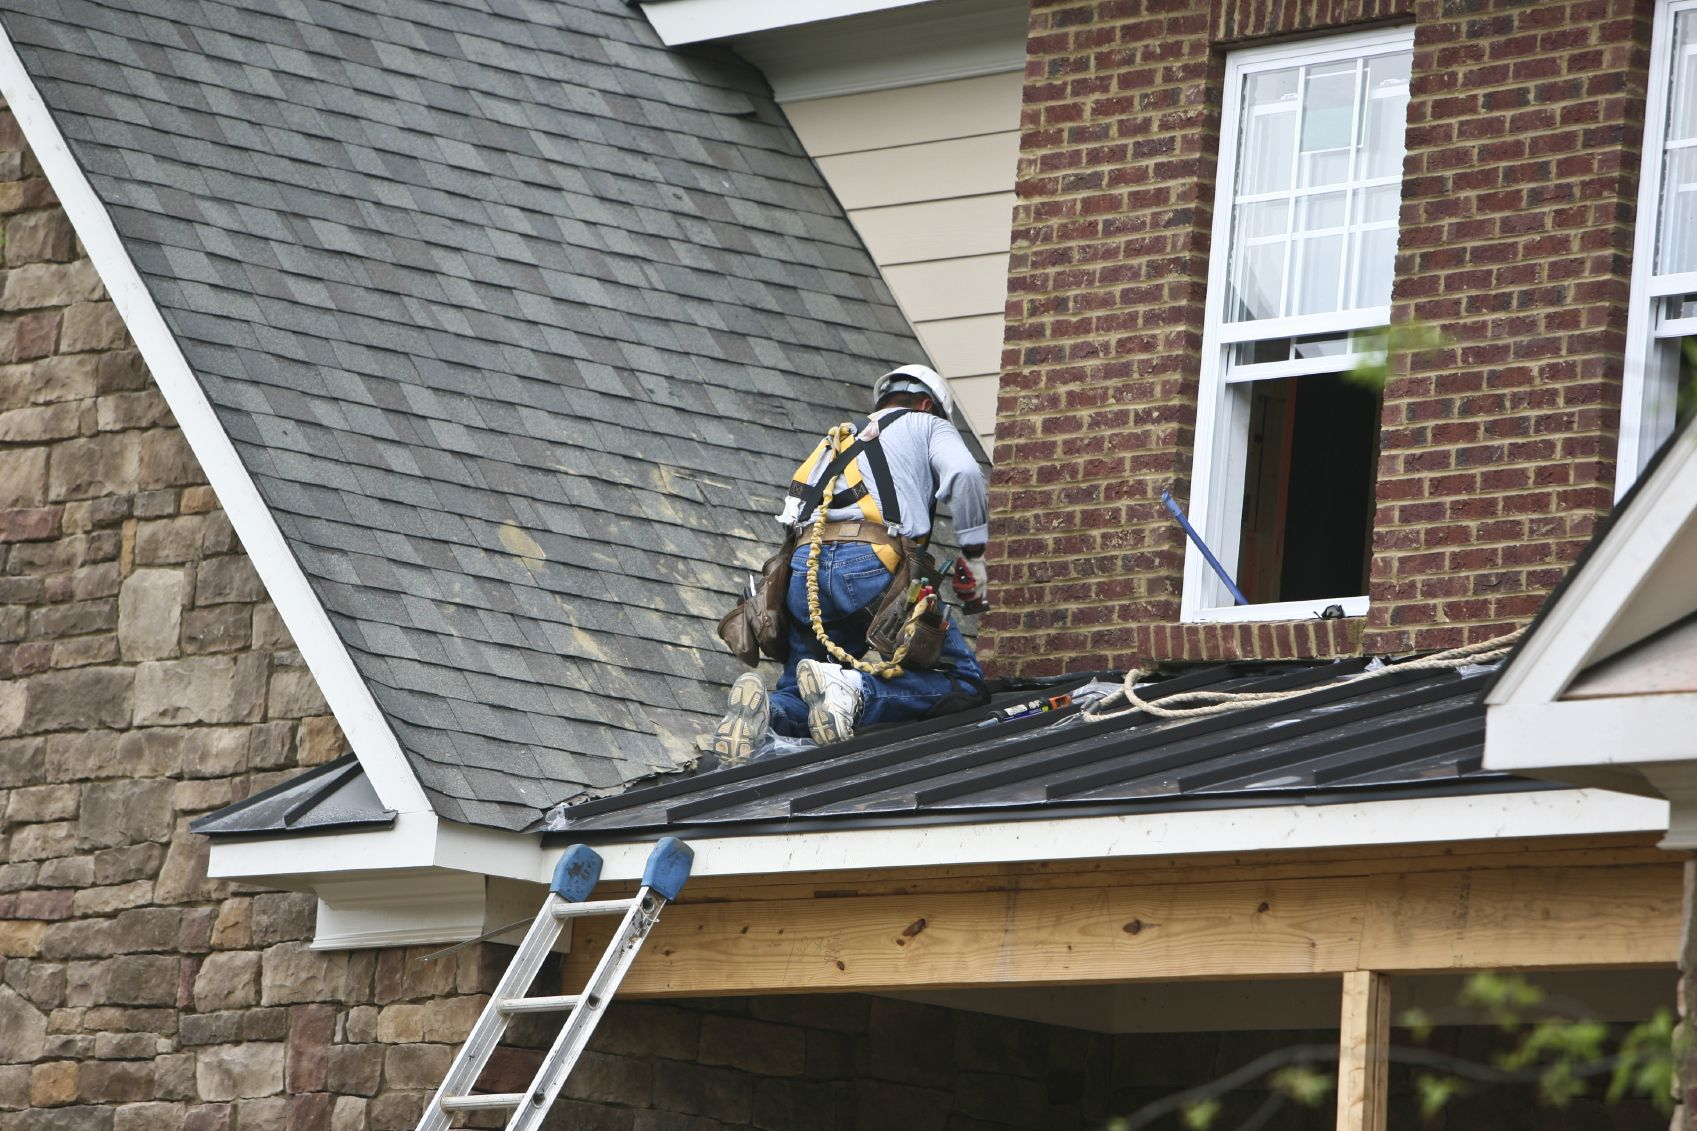 Residential Roofing Service Columbus Ga Roofing Services Residential Roofing Roofing